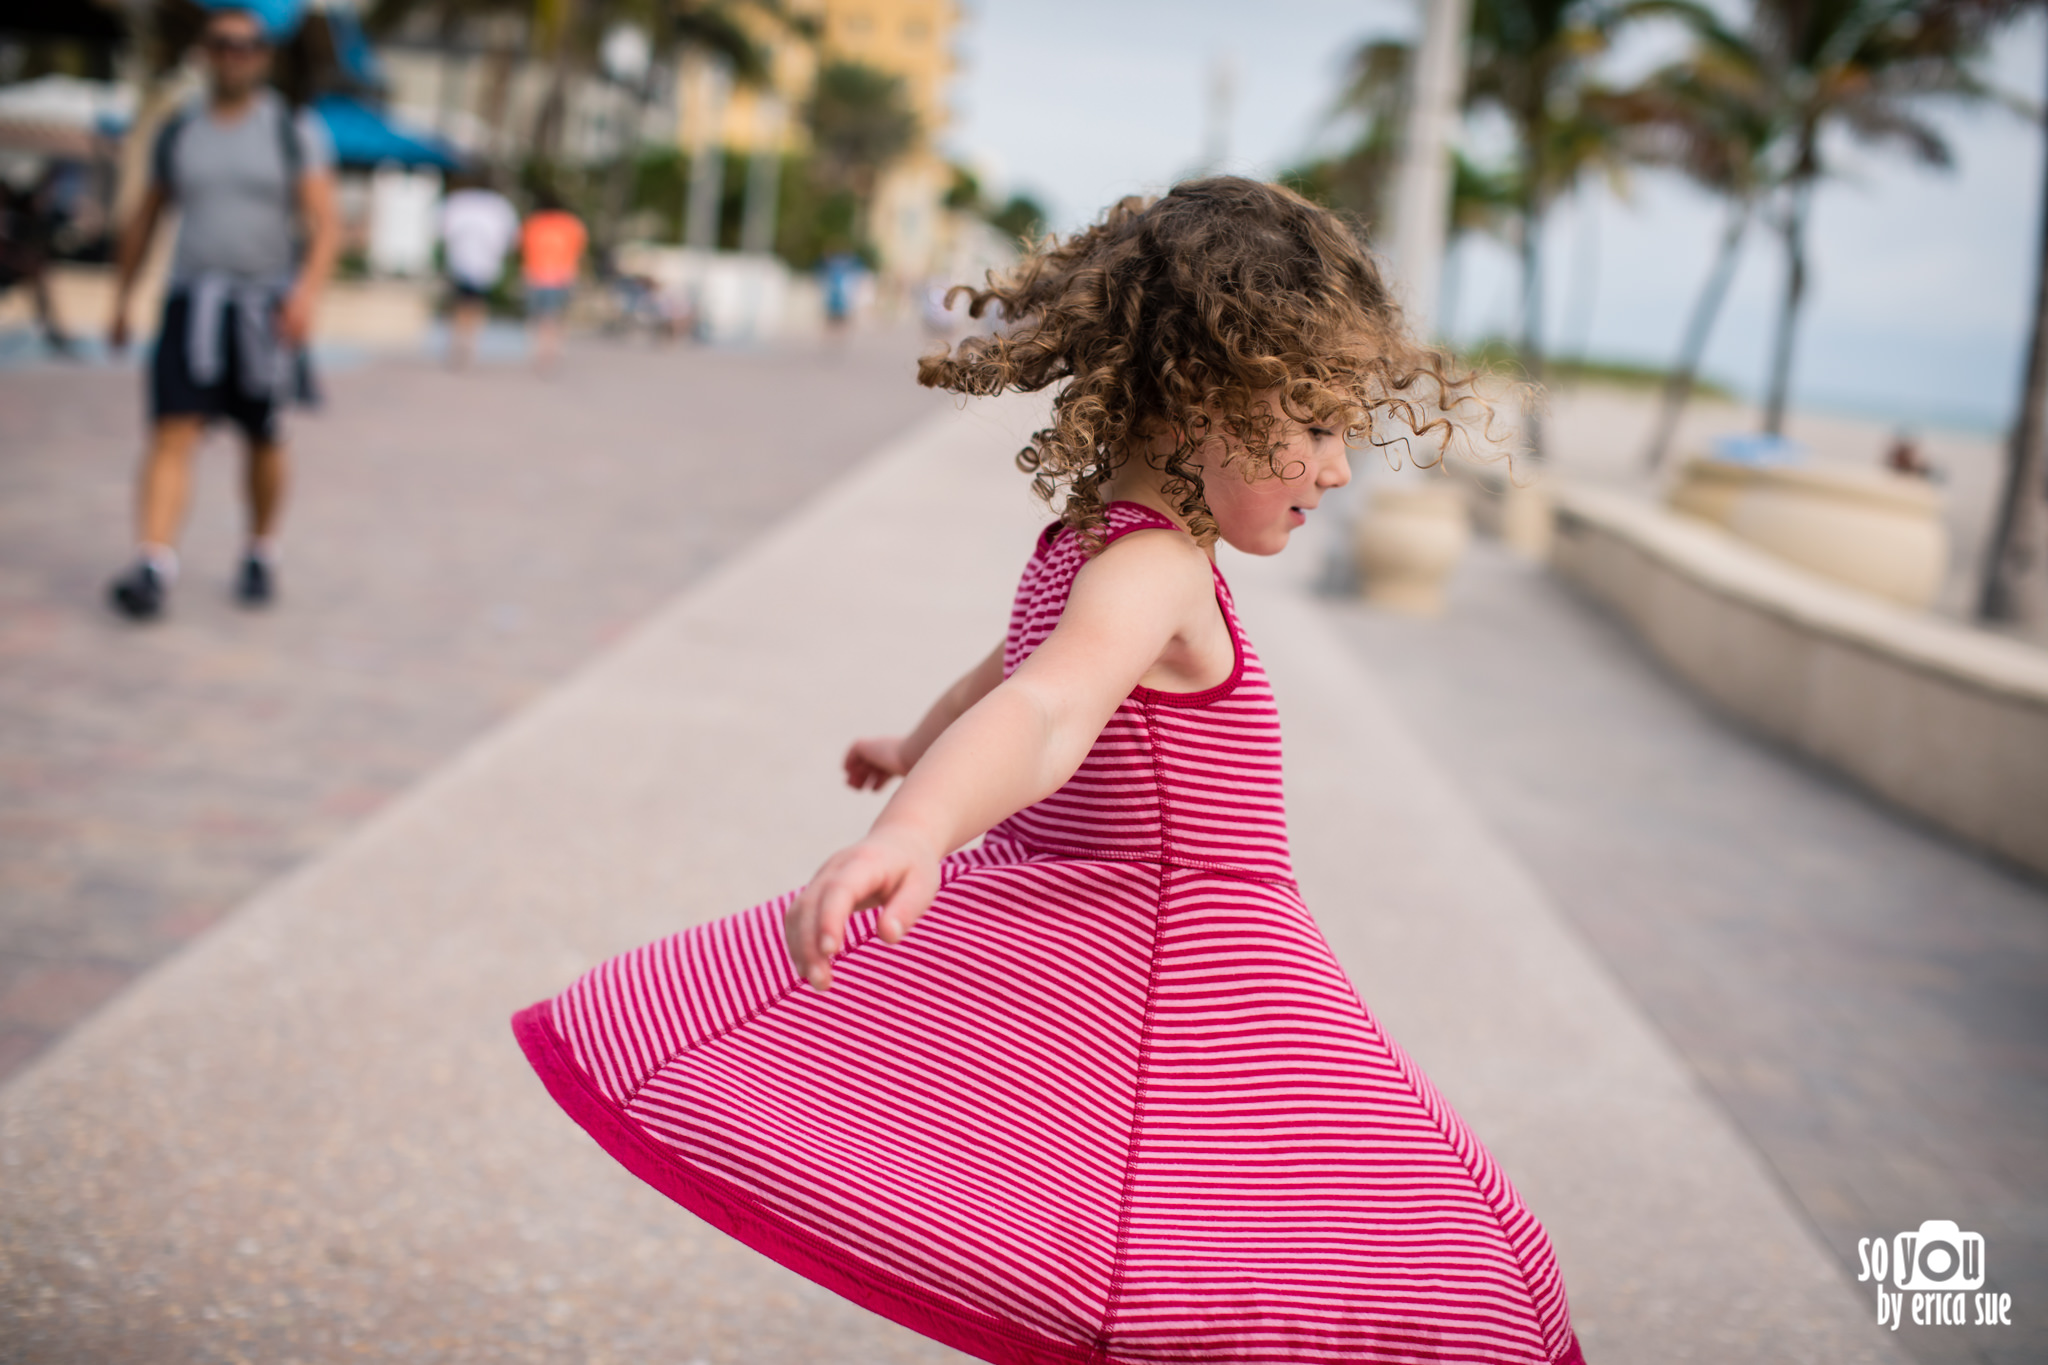 so-you-by-erica-sue-hollywood-beach-lifestyle-family-photographer-session-1378.JPG